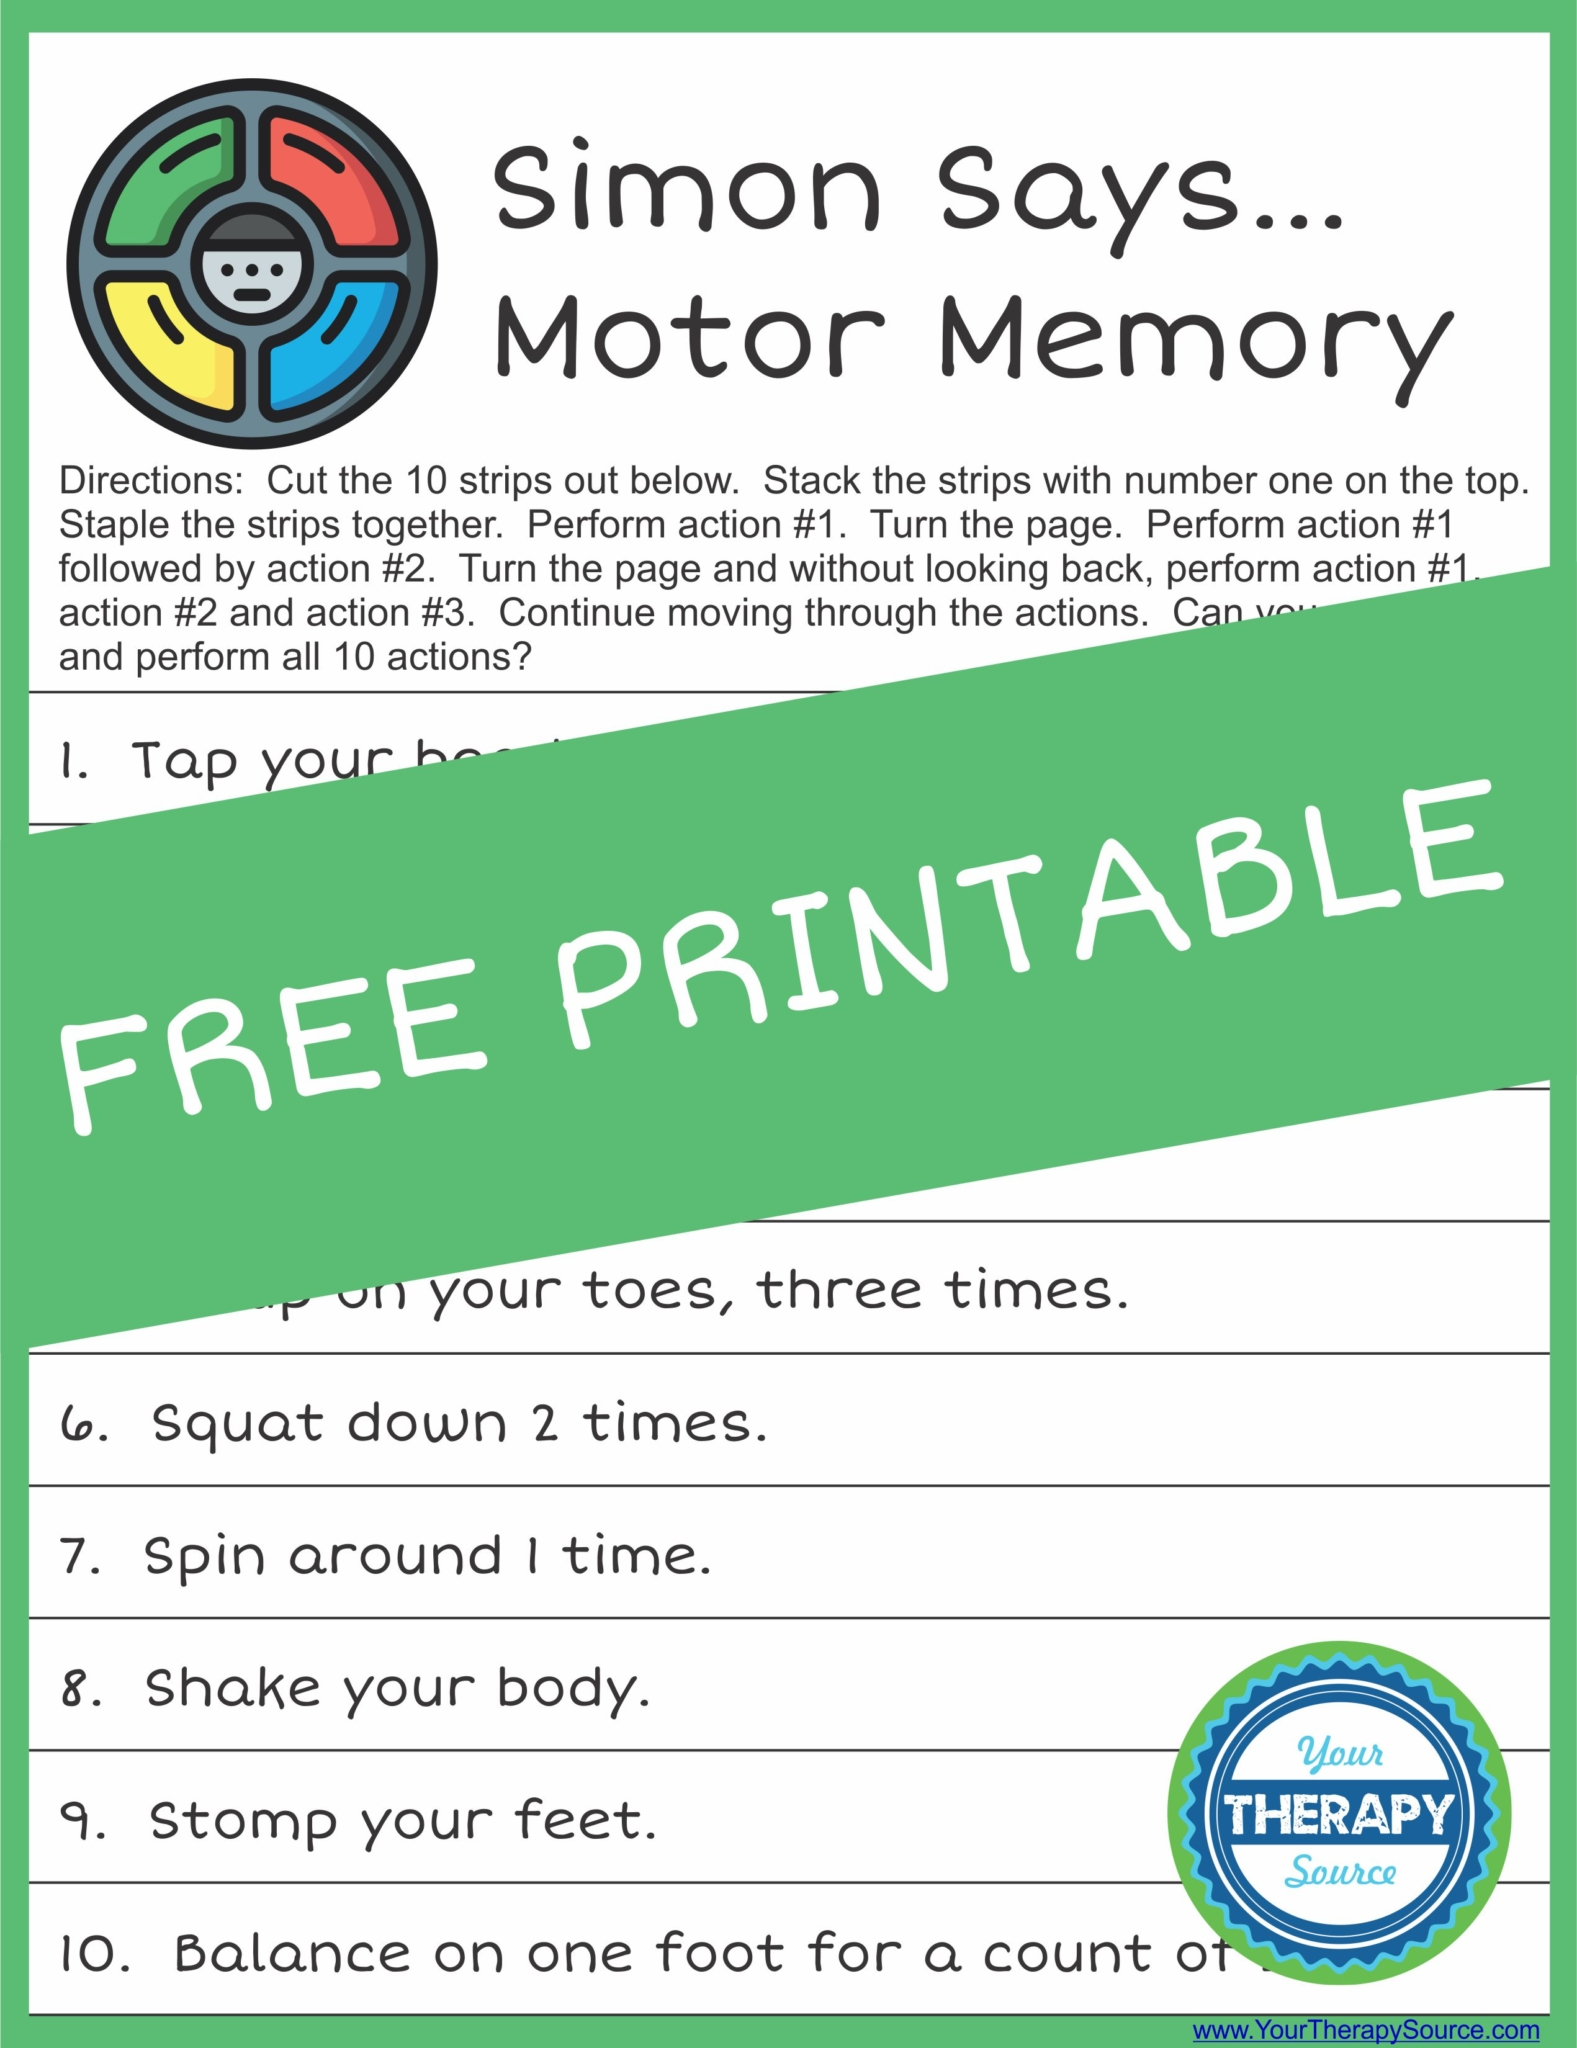 Simon Says Motor Memory Challenge from Your Therapy Source